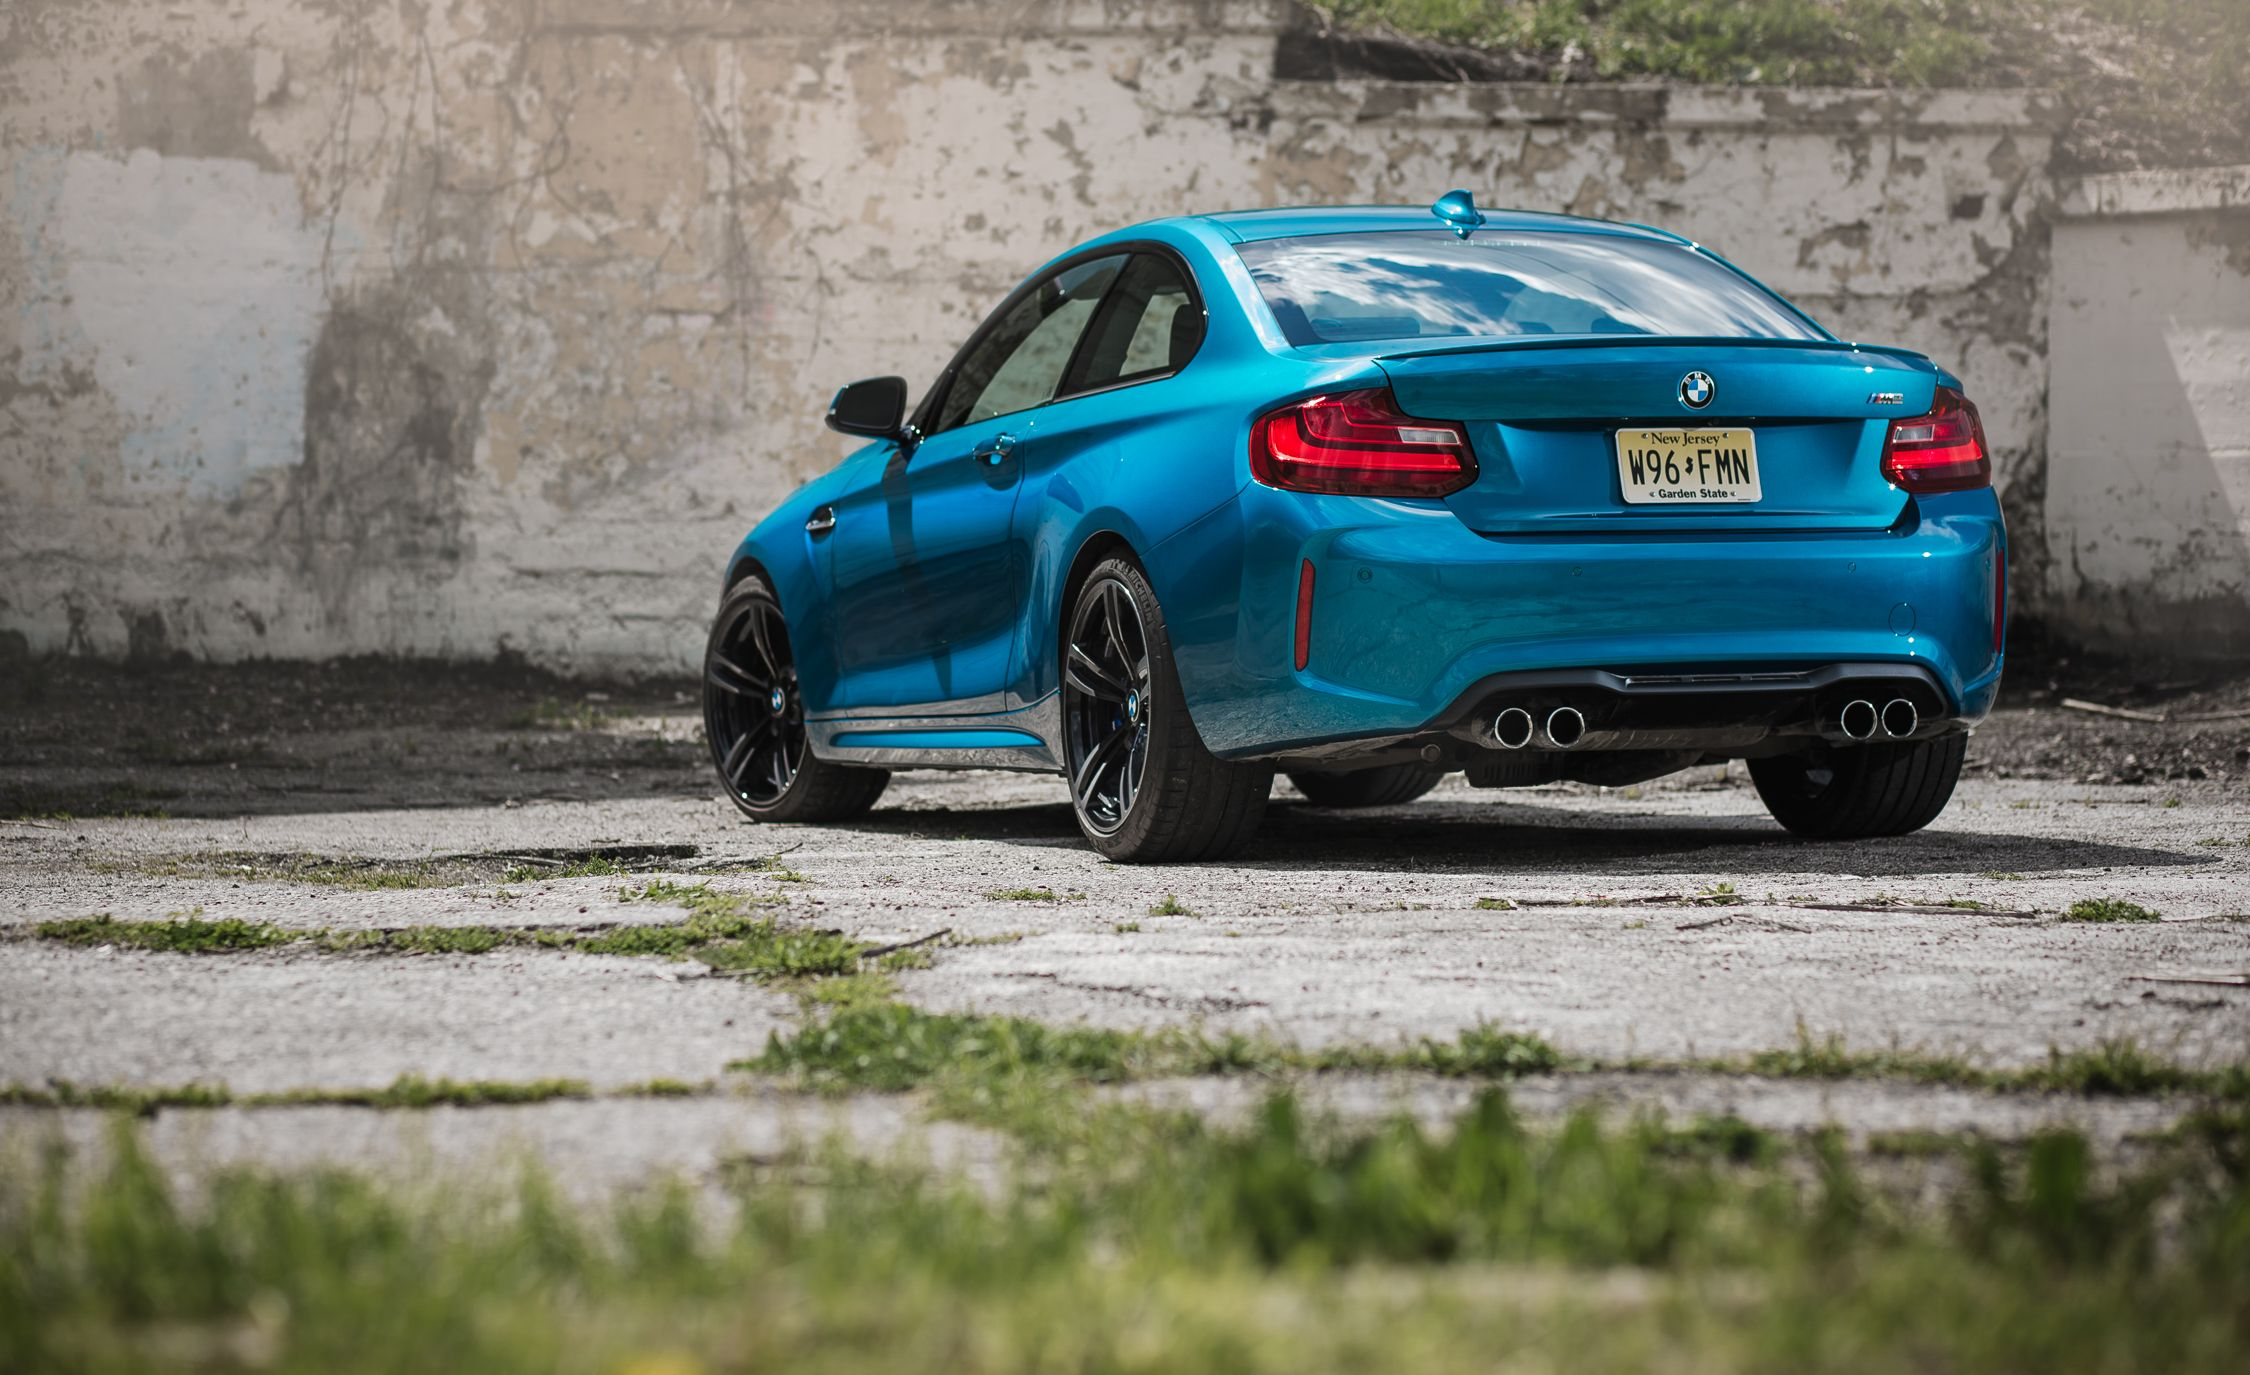 BMW M Reviews BMW M Price Photos And Specs Car And Driver - Blue bmw